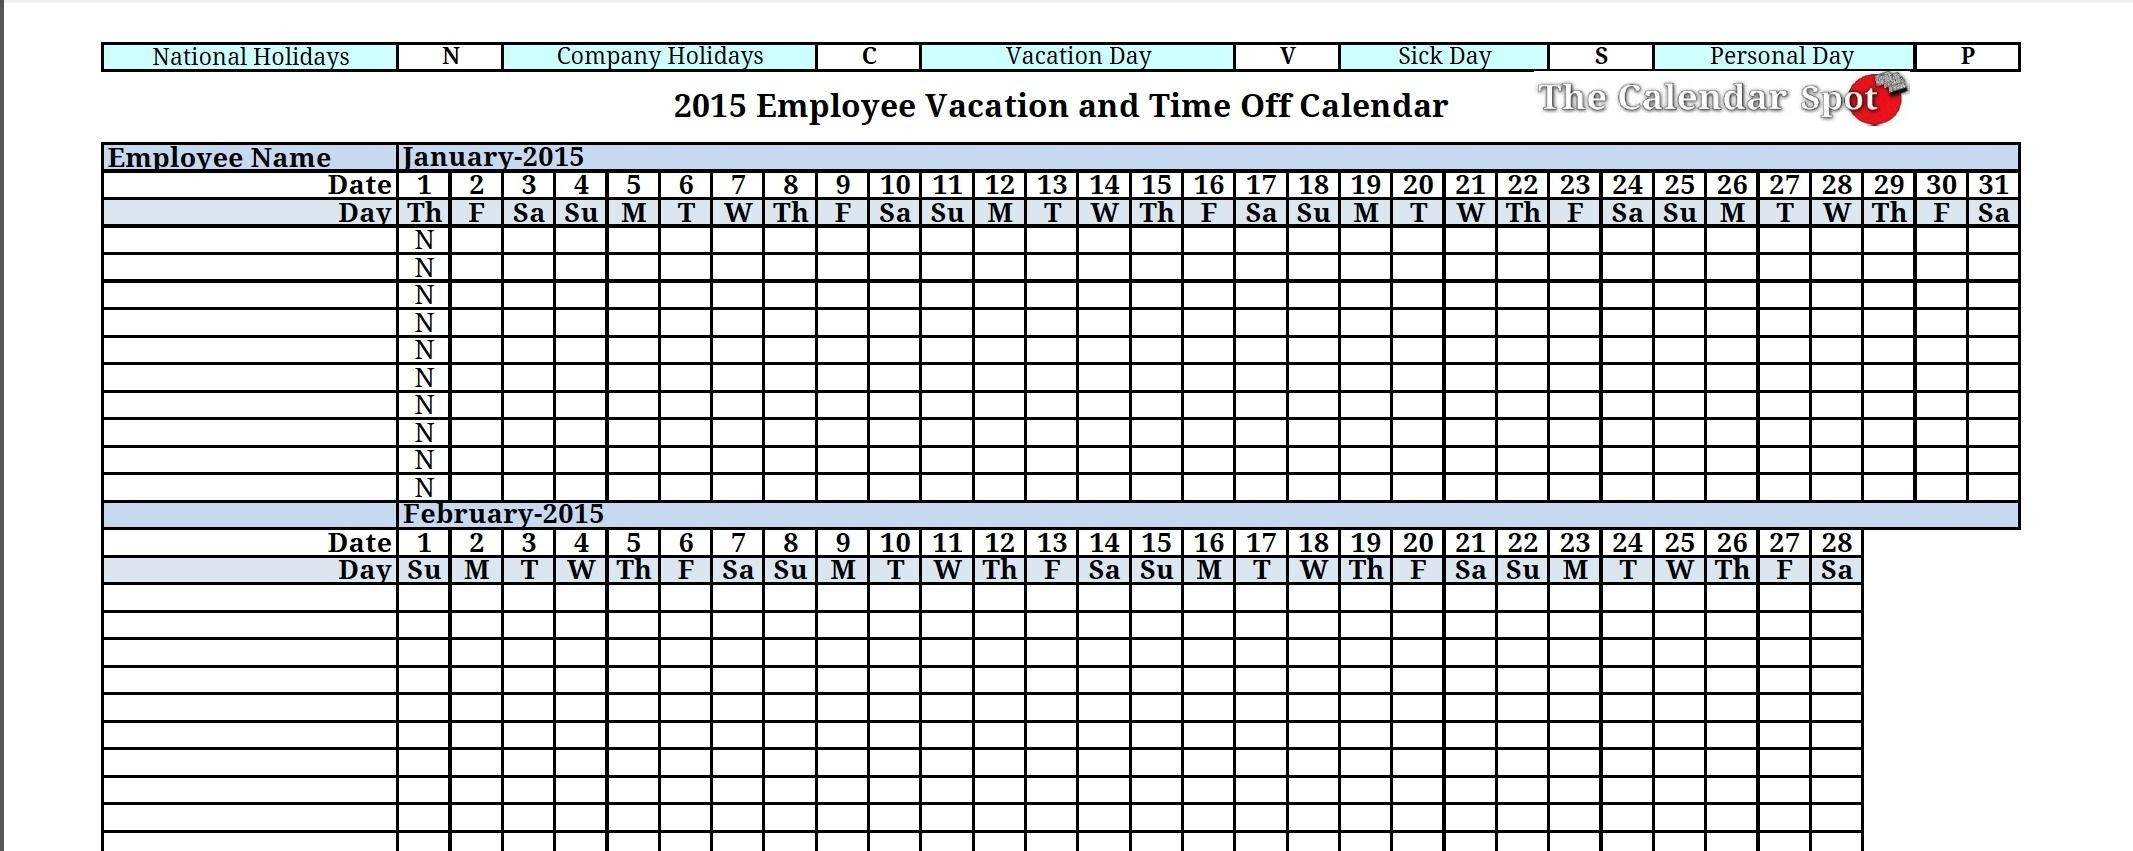 2015 Employee Vacation Absence Tracking Calendar | Vacation-Staff Vacation Calendar Template